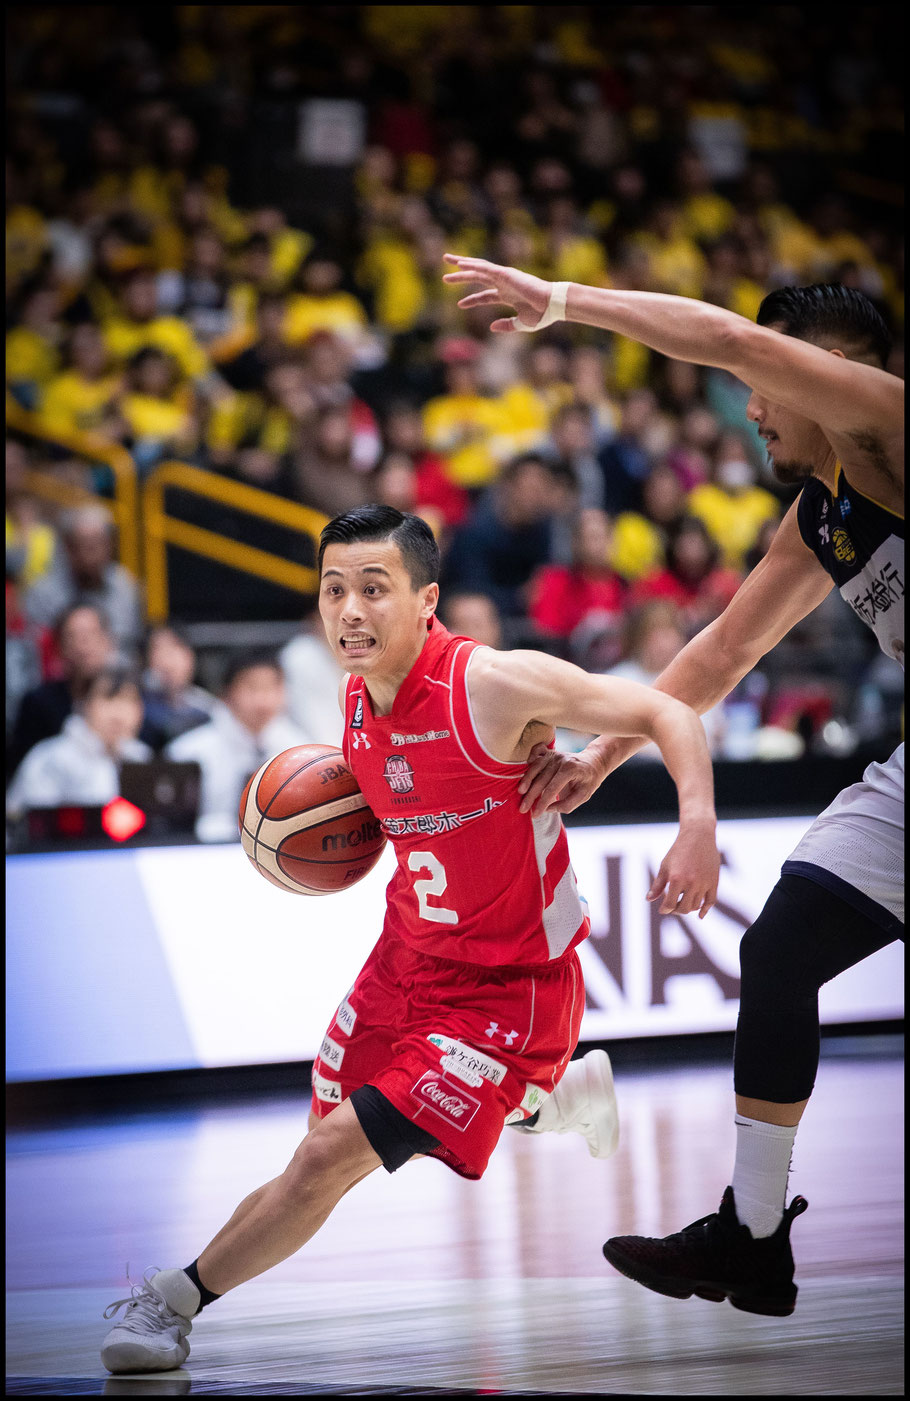 Takashi Ono's 18 points powered Chiba to victory – Chris Pfaff, Inside Sport: Japan, Jan 7th, 2018